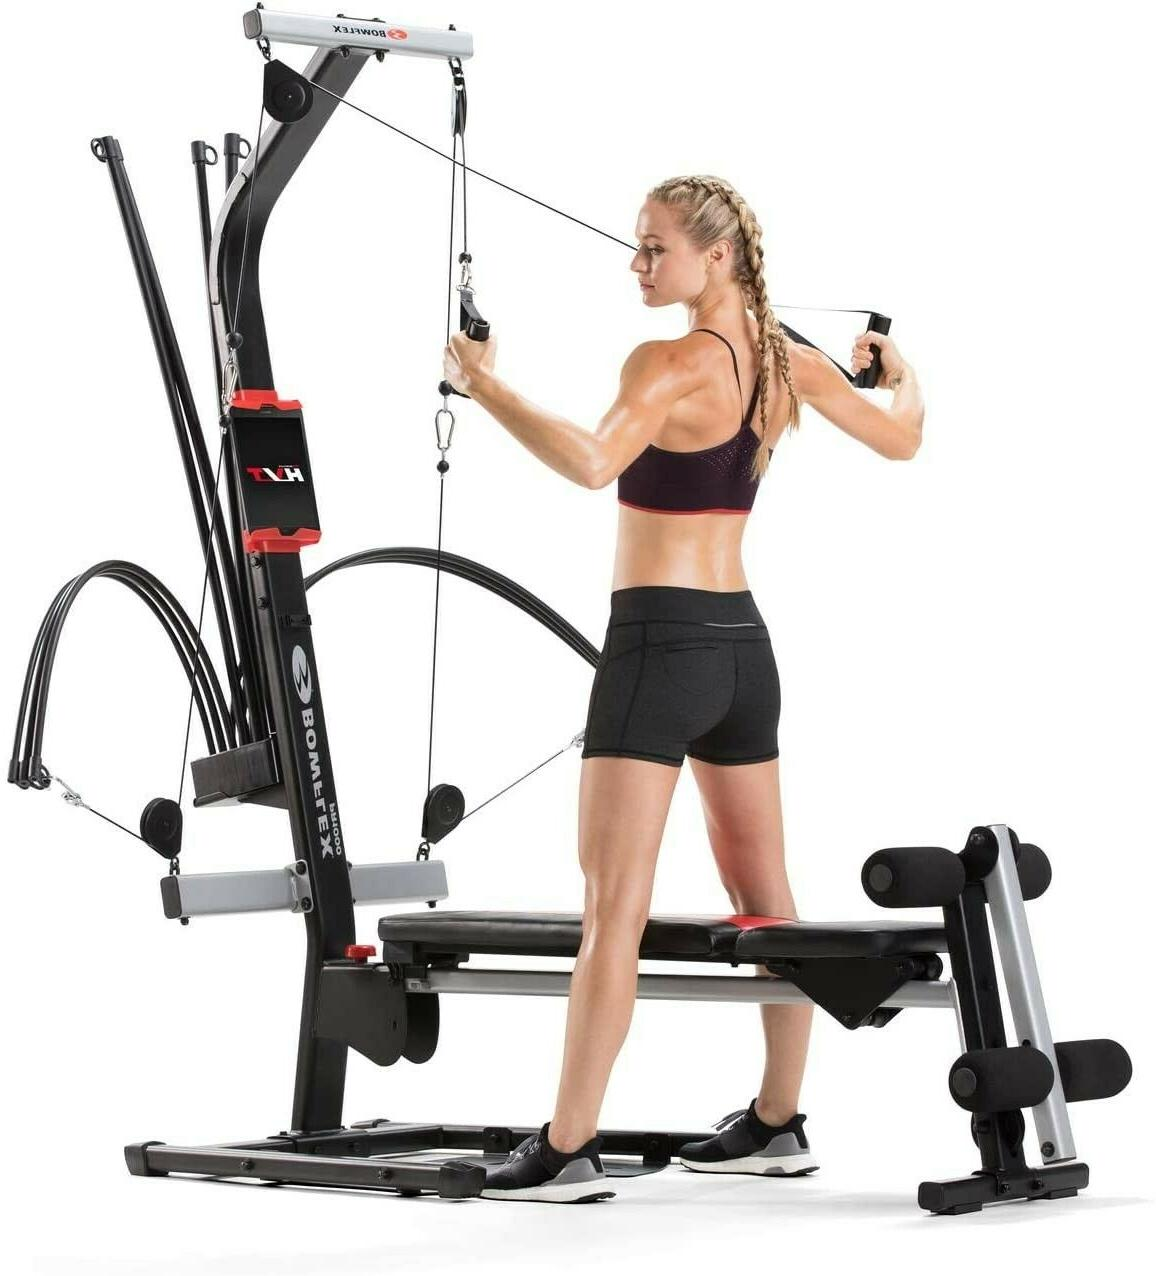 in hand pr1000 home gym series full